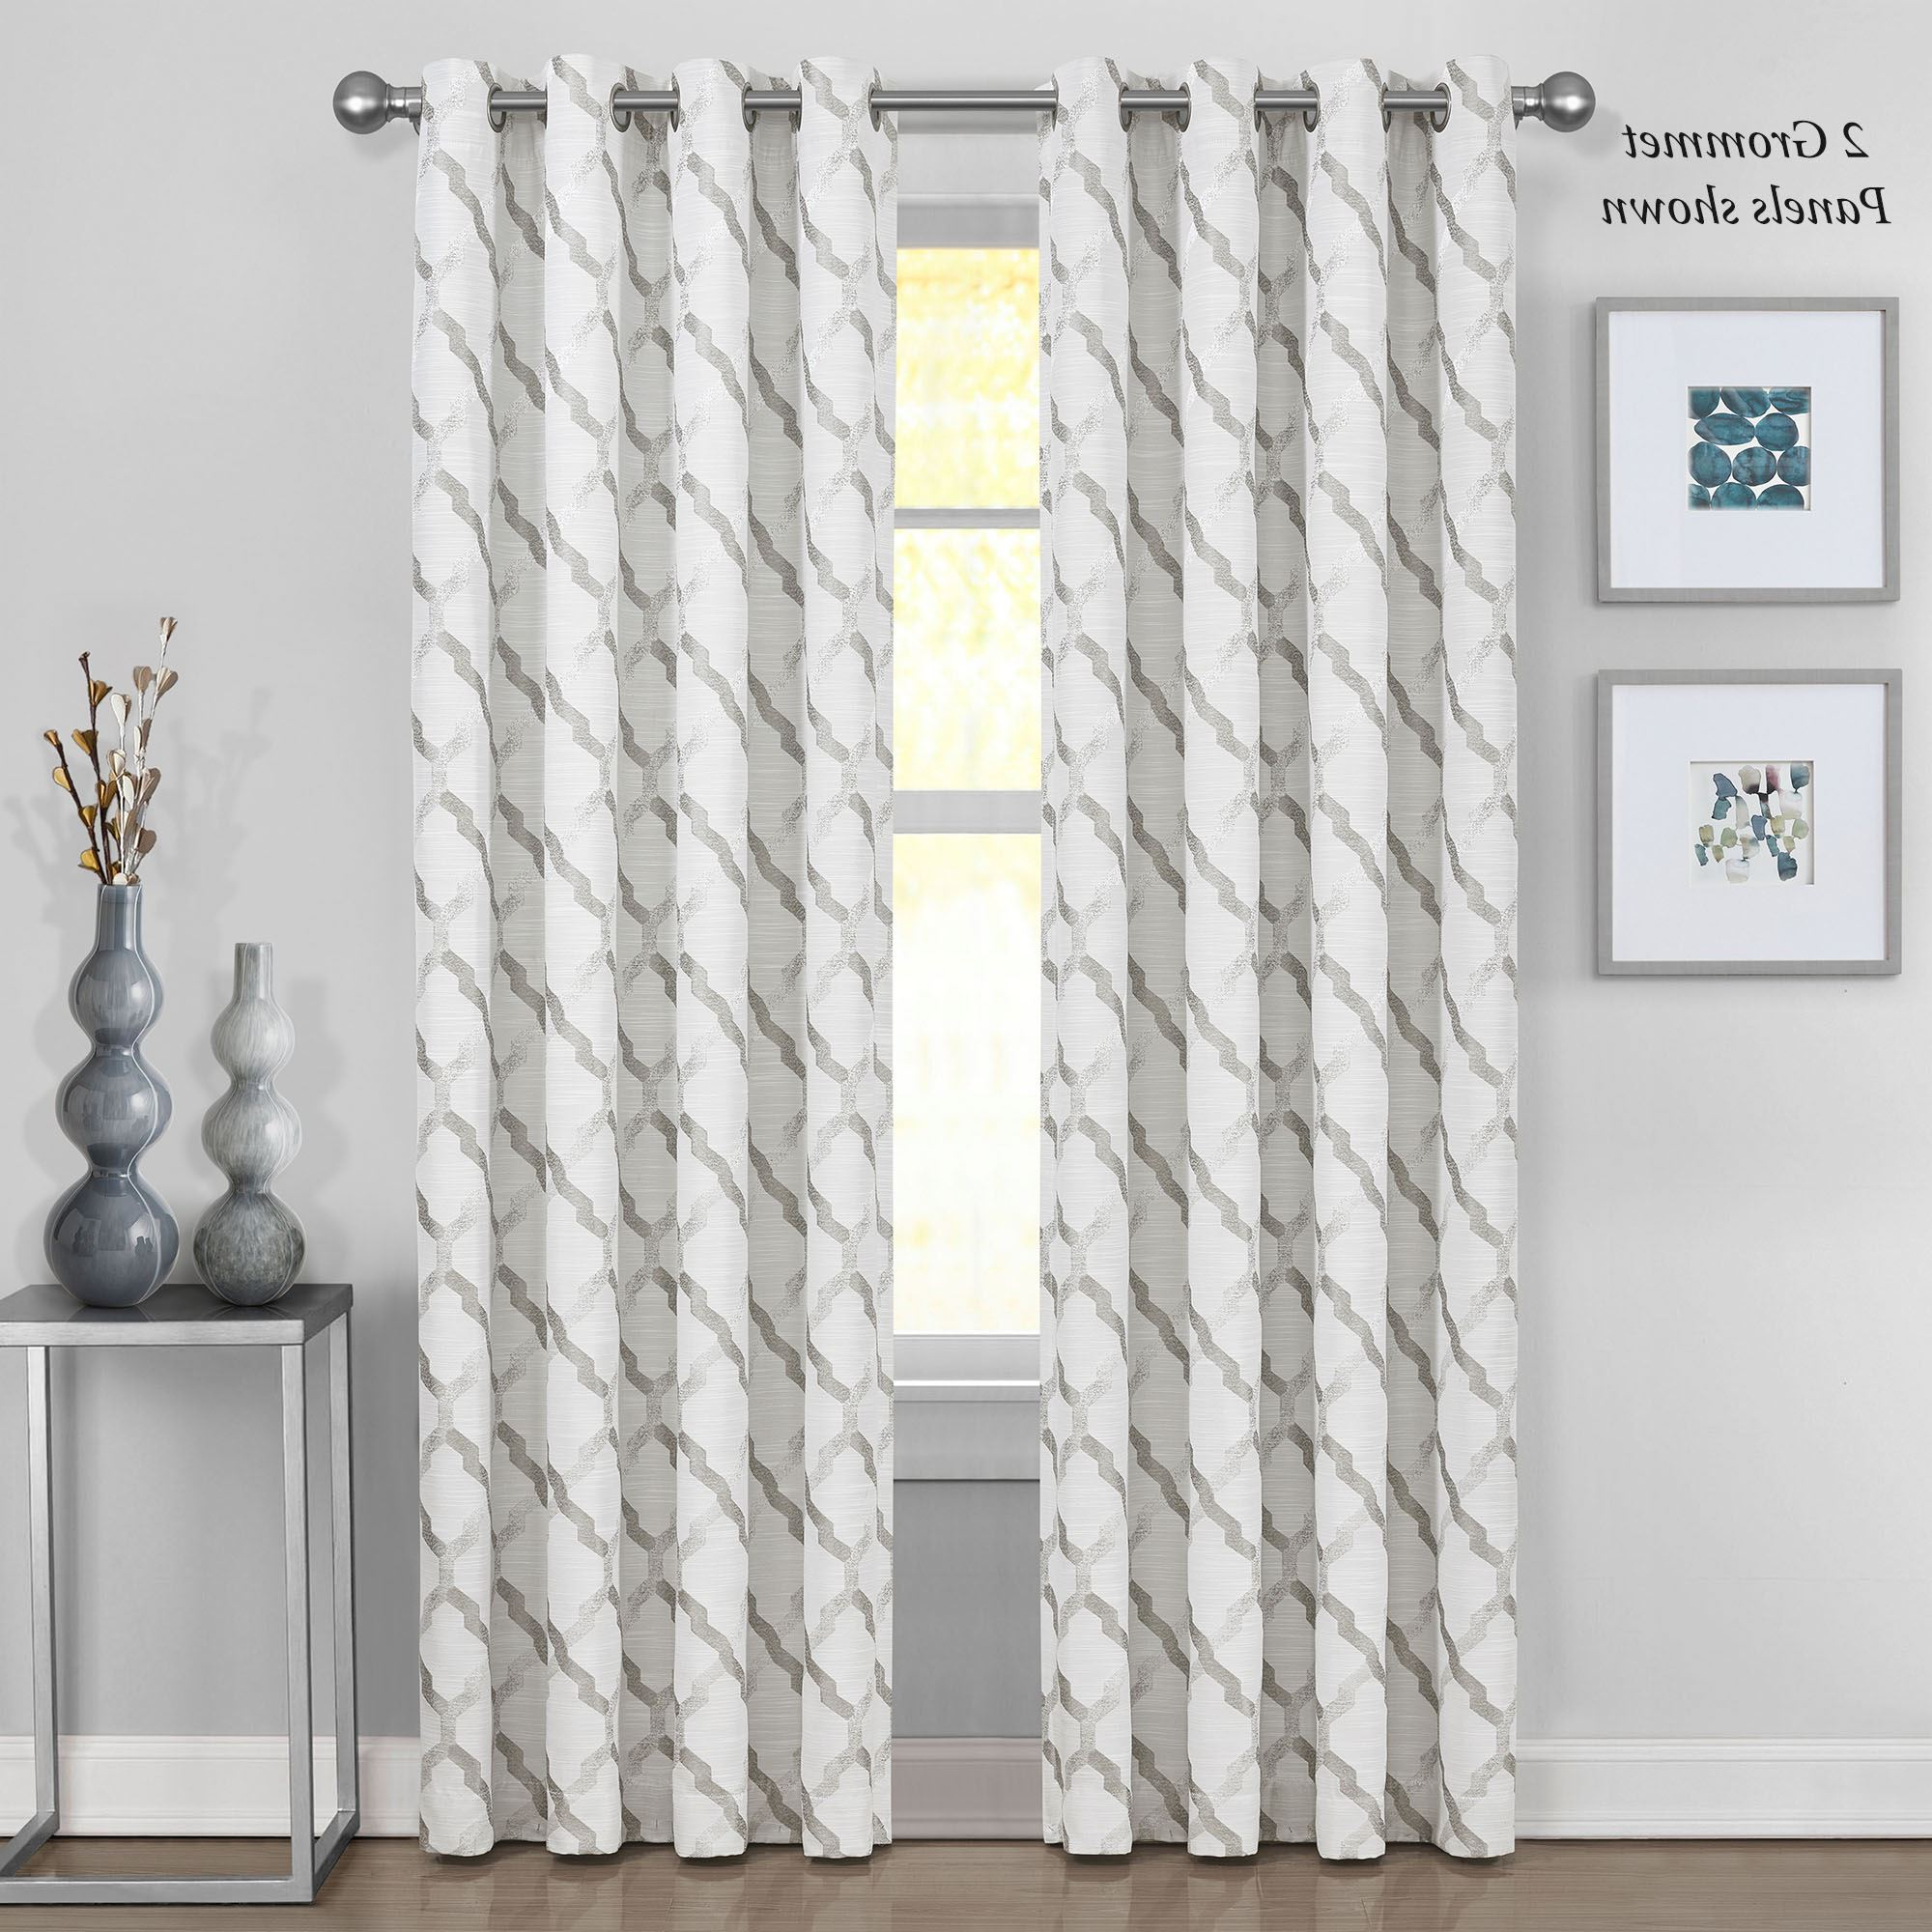 Lined Grommet Curtain Panels Regarding 2021 Modena Geometric Lattice Lined Grommet Curtain Panel (View 10 of 20)